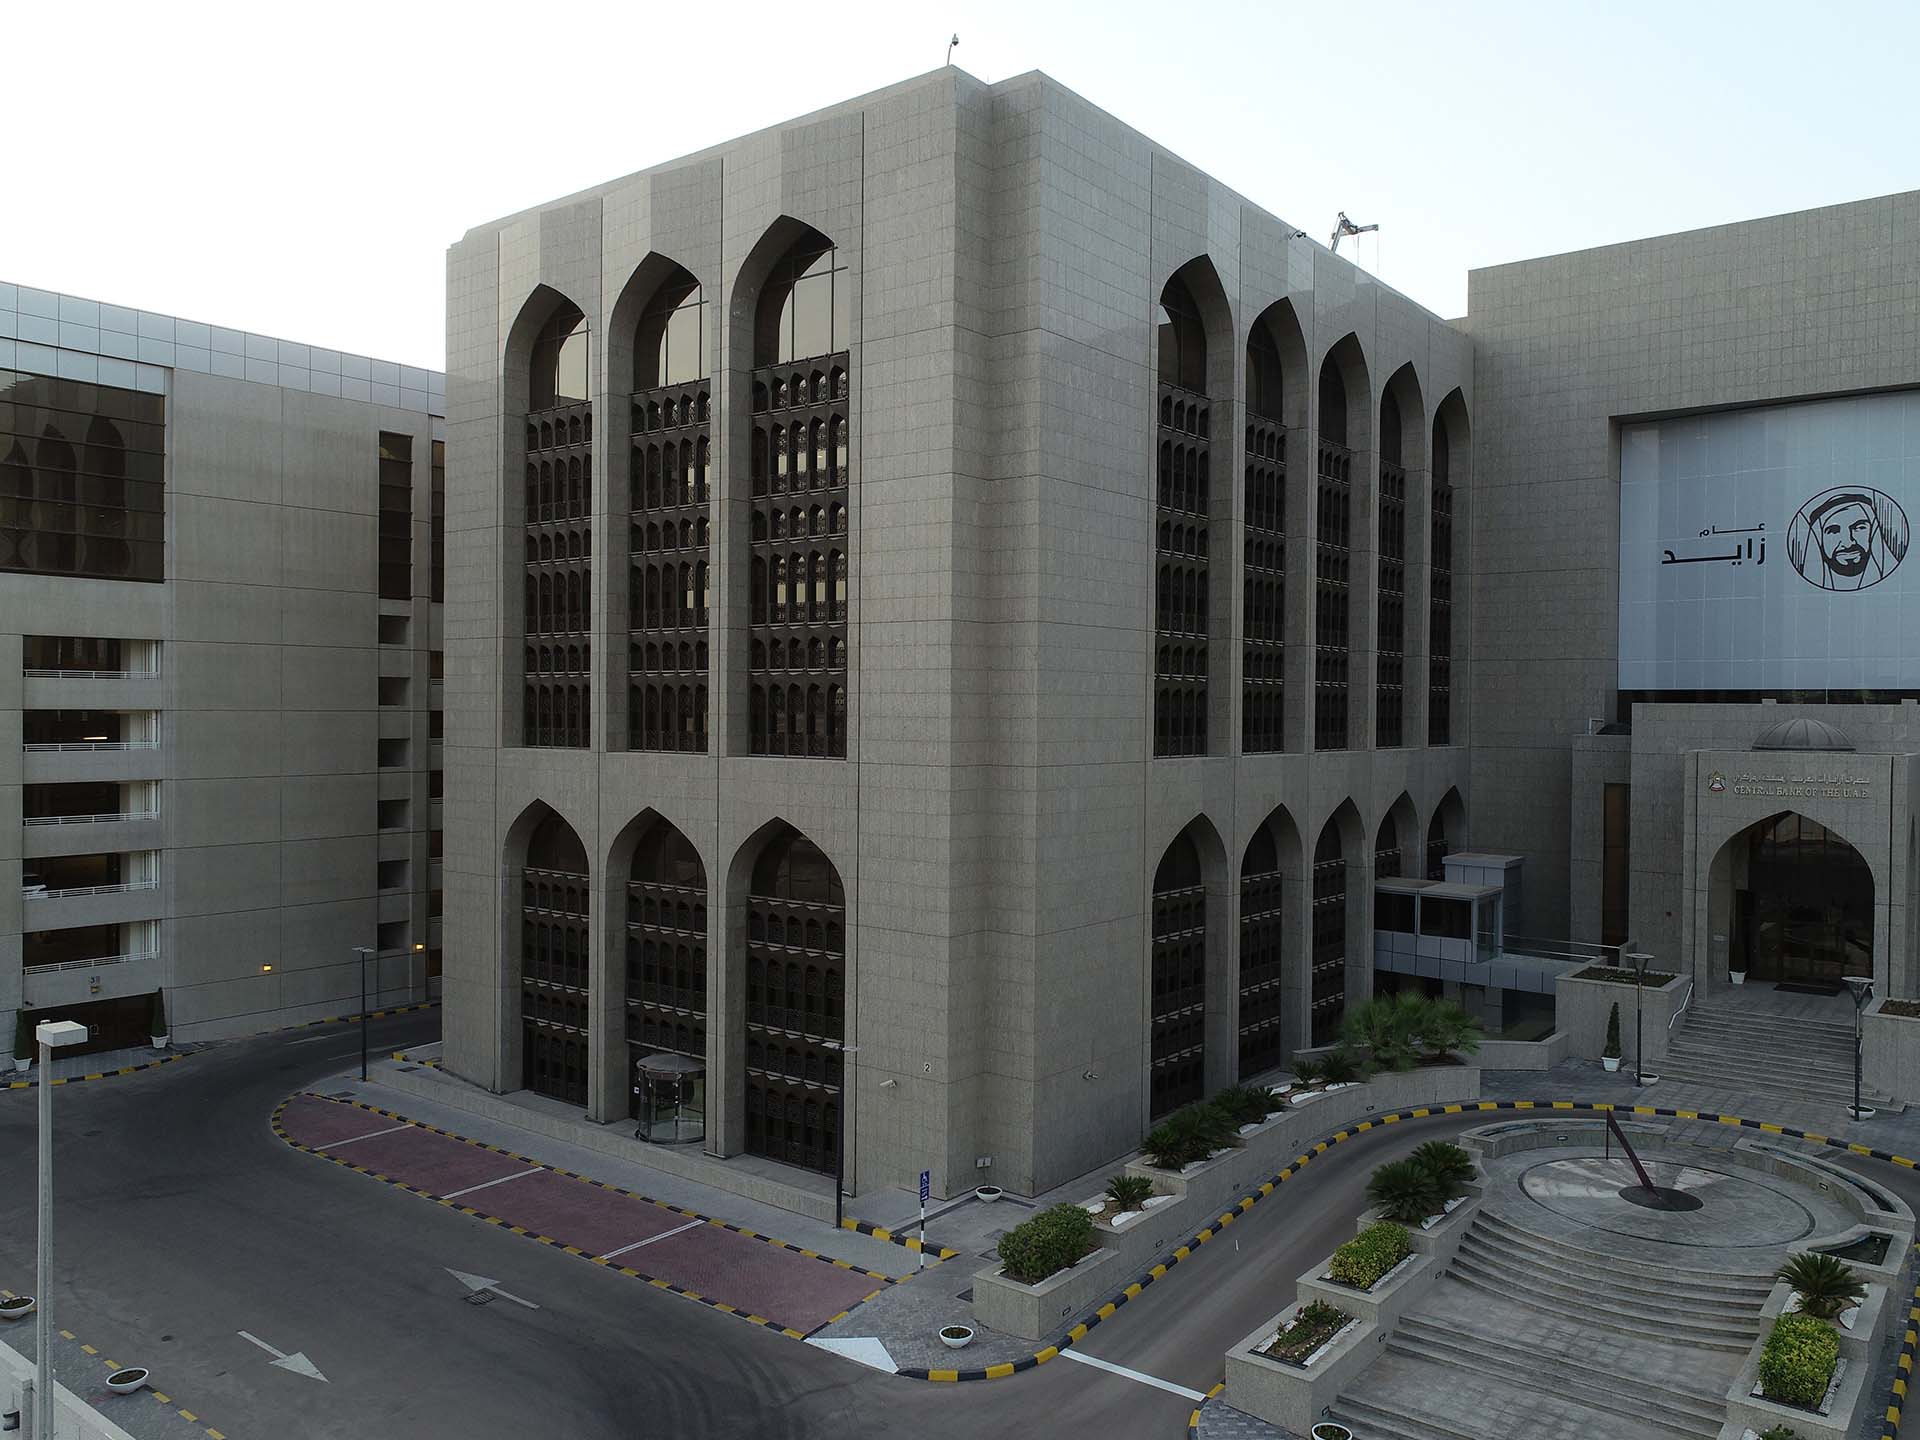 cbuae-issues-sme-market-conduct-regulation-to-enhance-sme-practices-across-uae-banking-sector